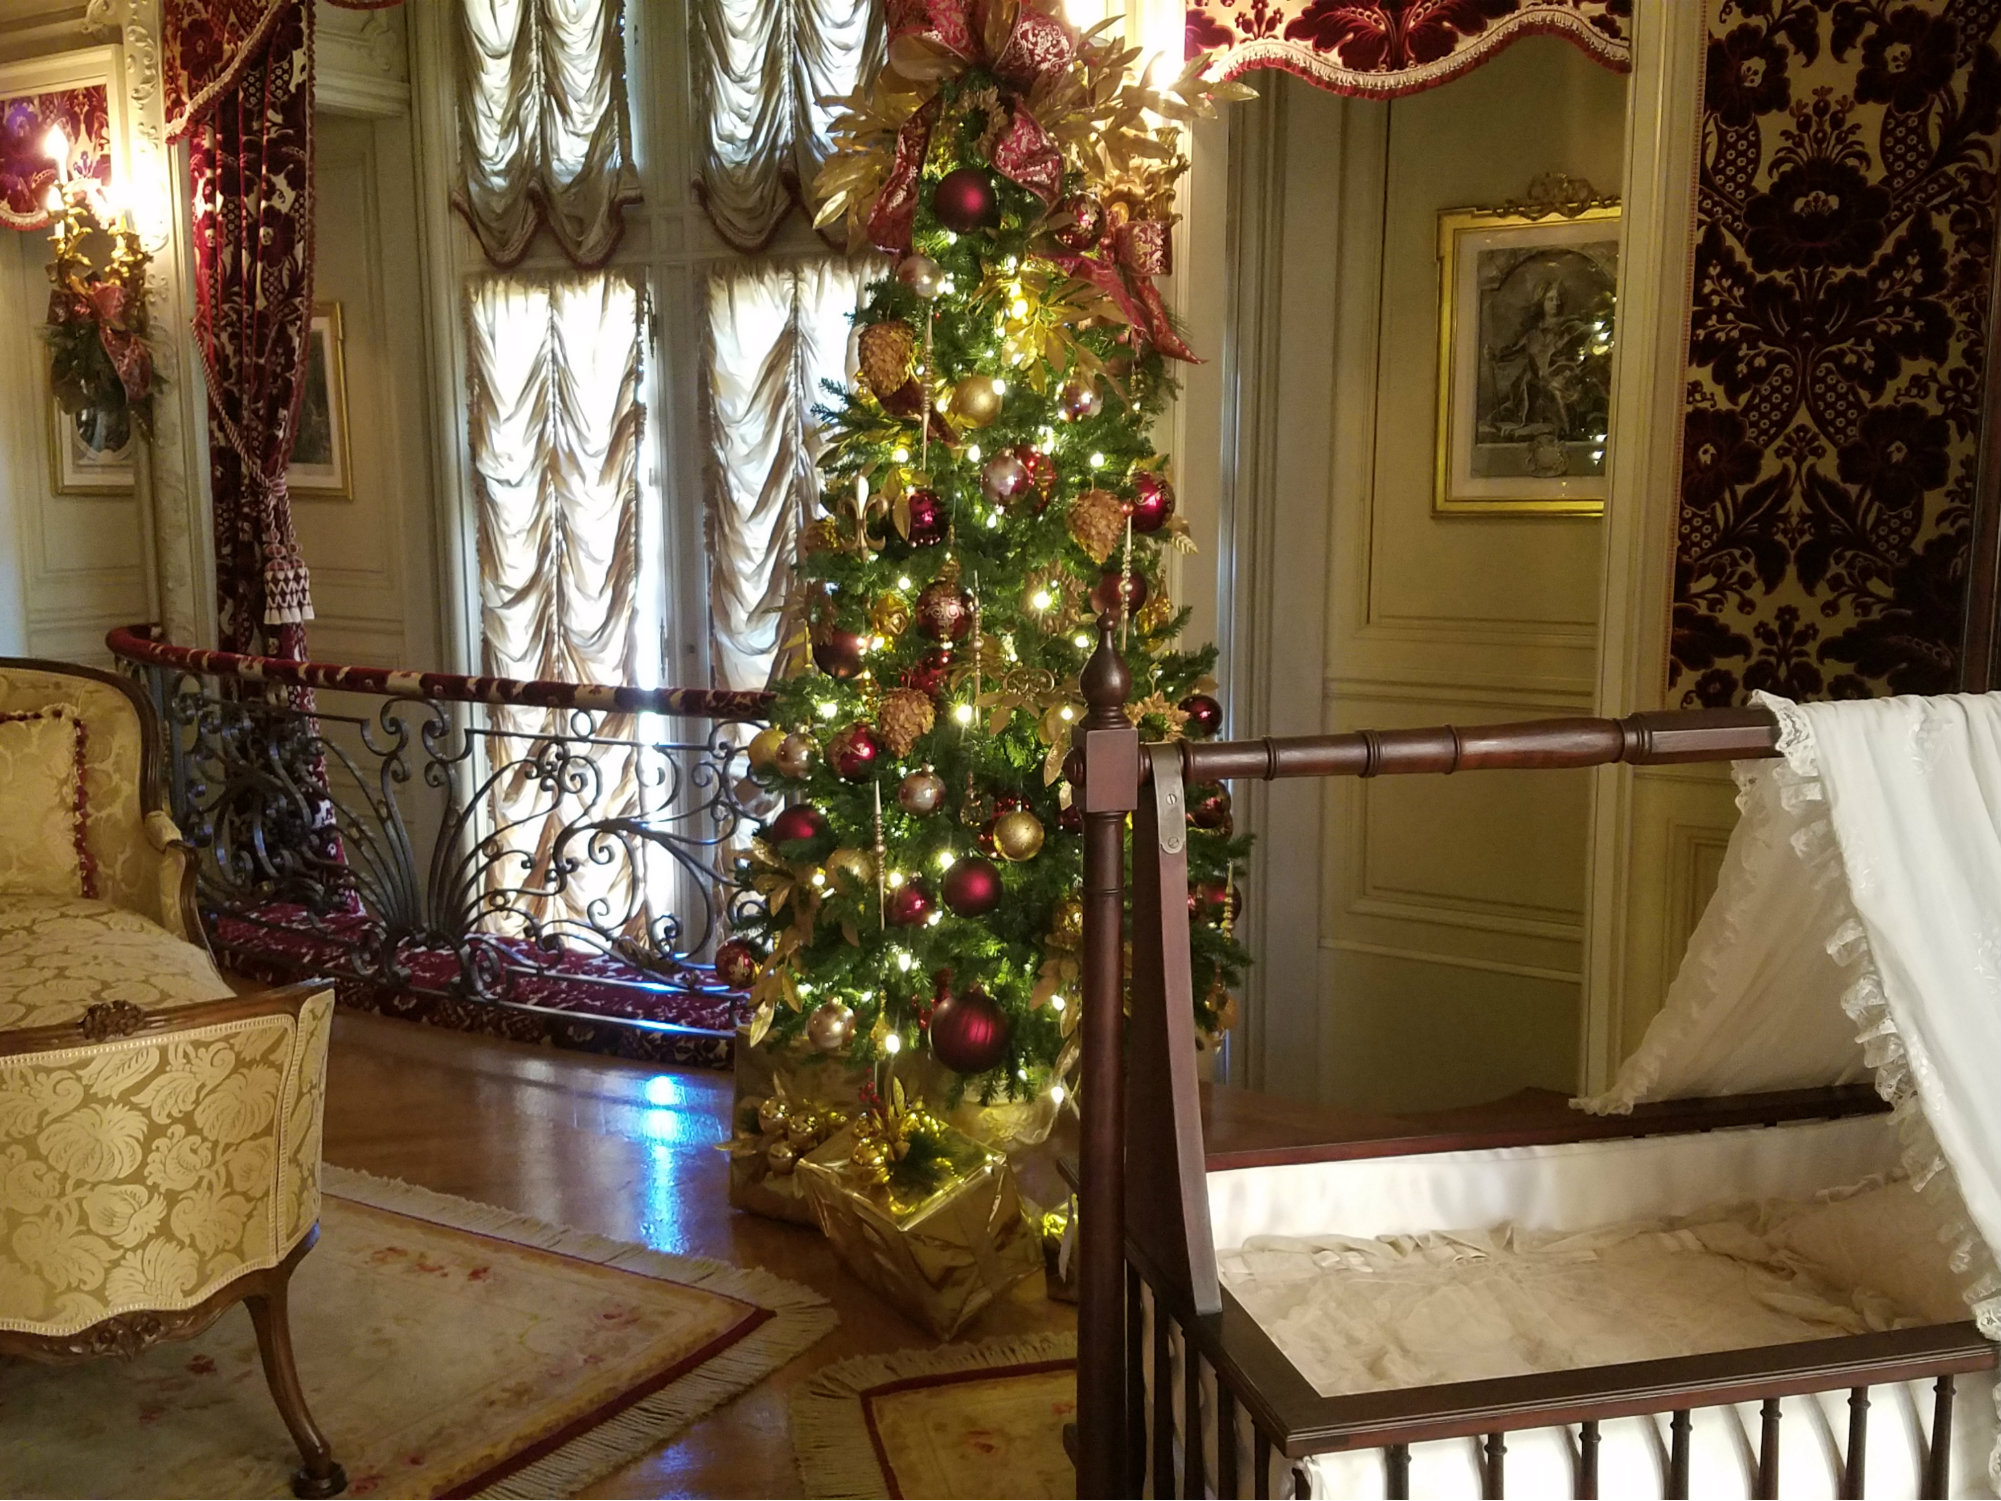 French chateau style bedroom with bassinet and Christmas tree